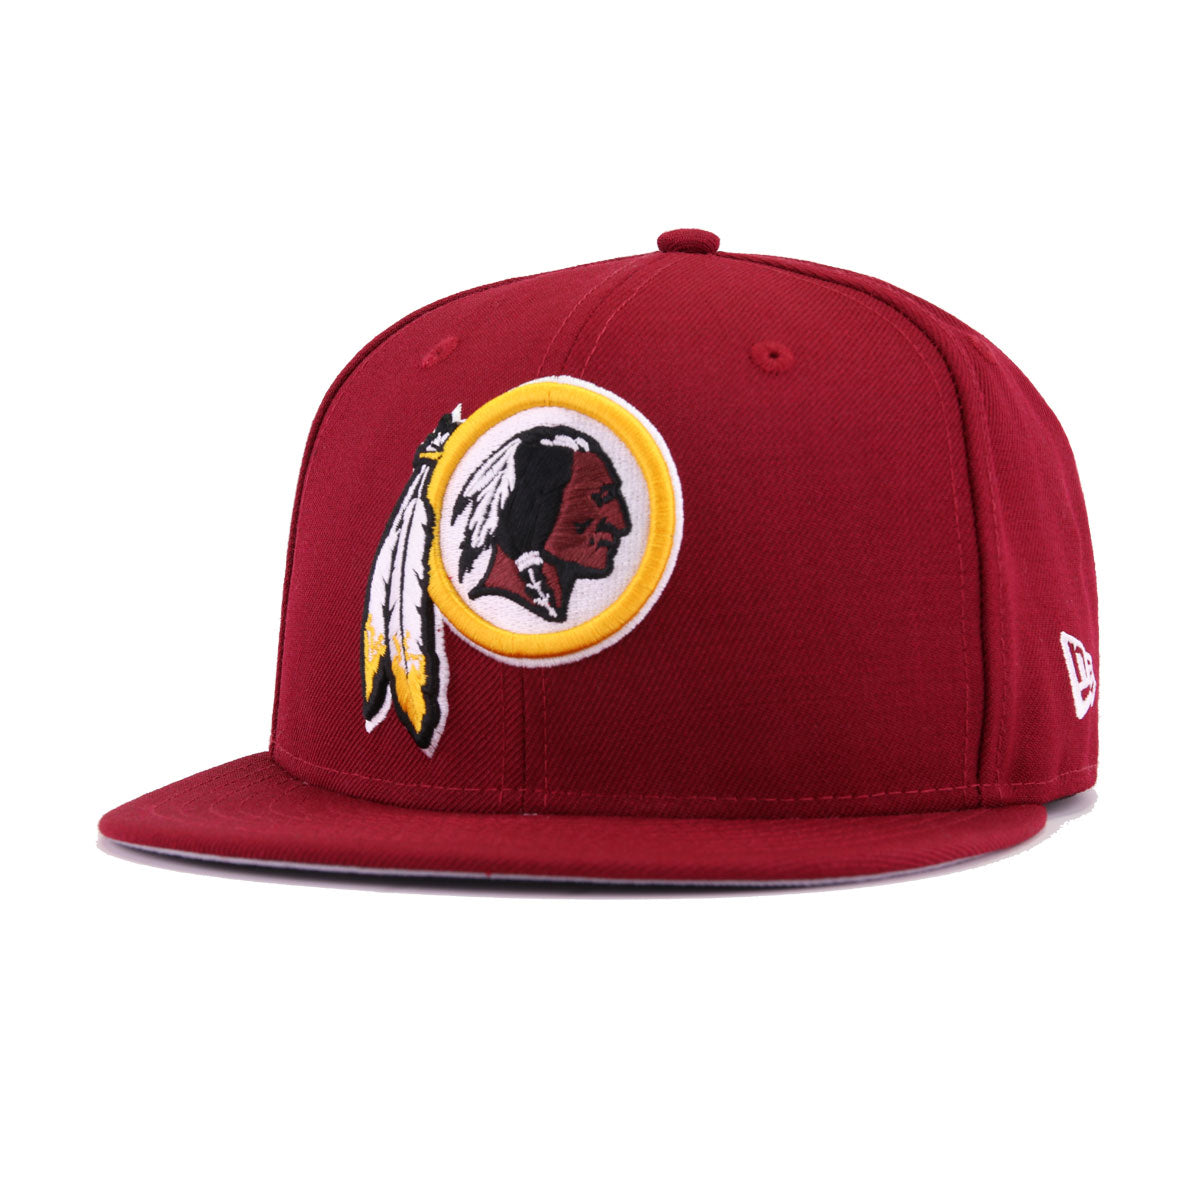 d621a48a Washington Redskins Cardinal Red Maroon A's Gold Superbowl 26 New Era  9Fifty Snapback